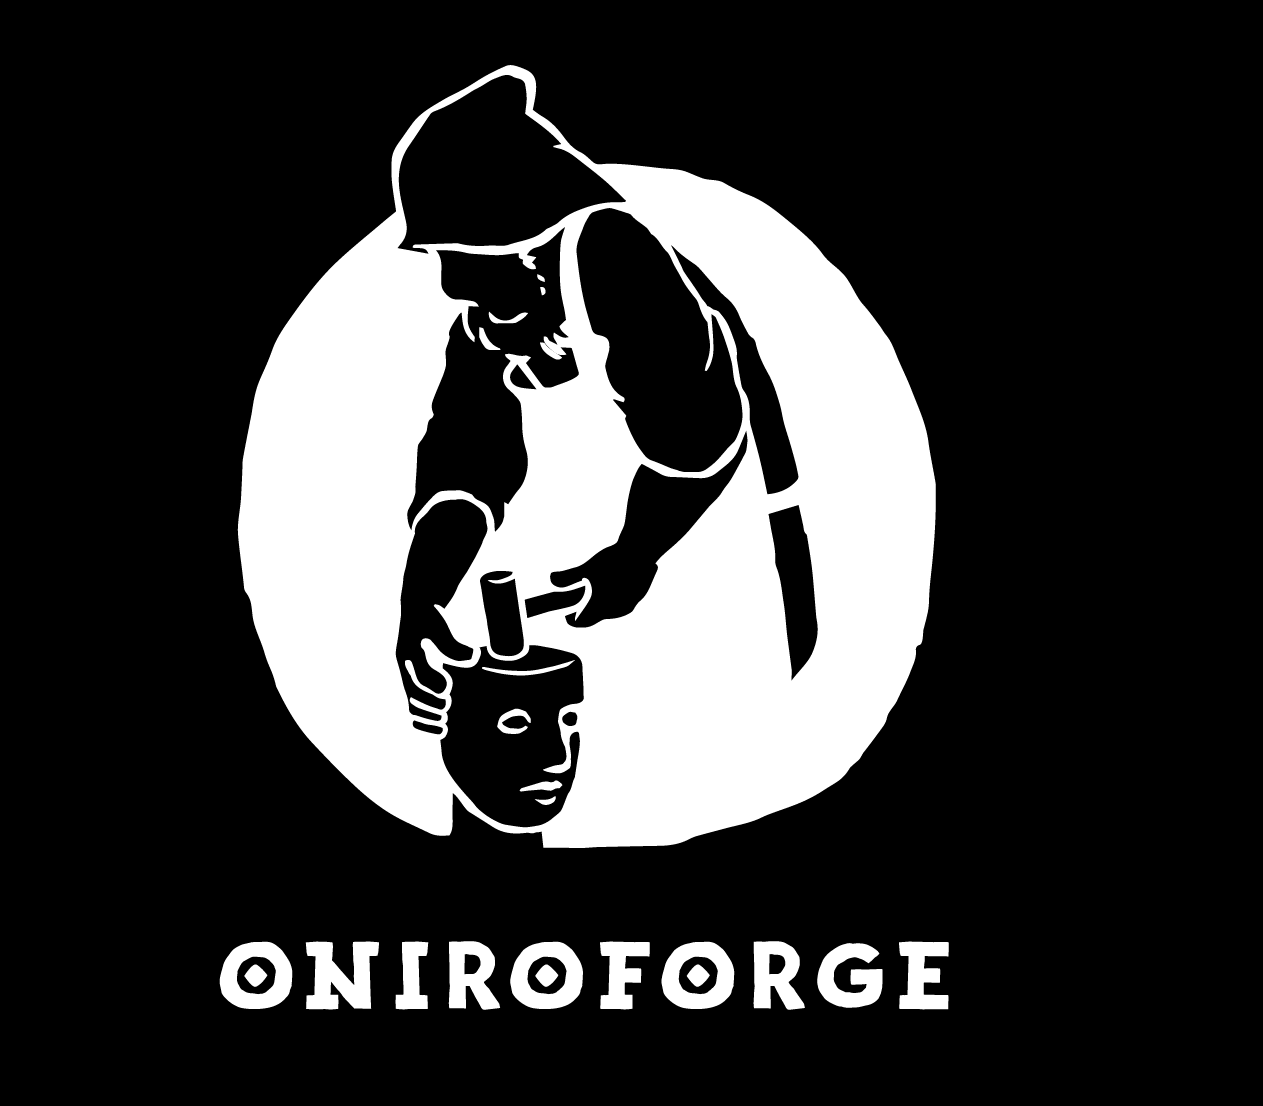 Oniroforge, Fribourg